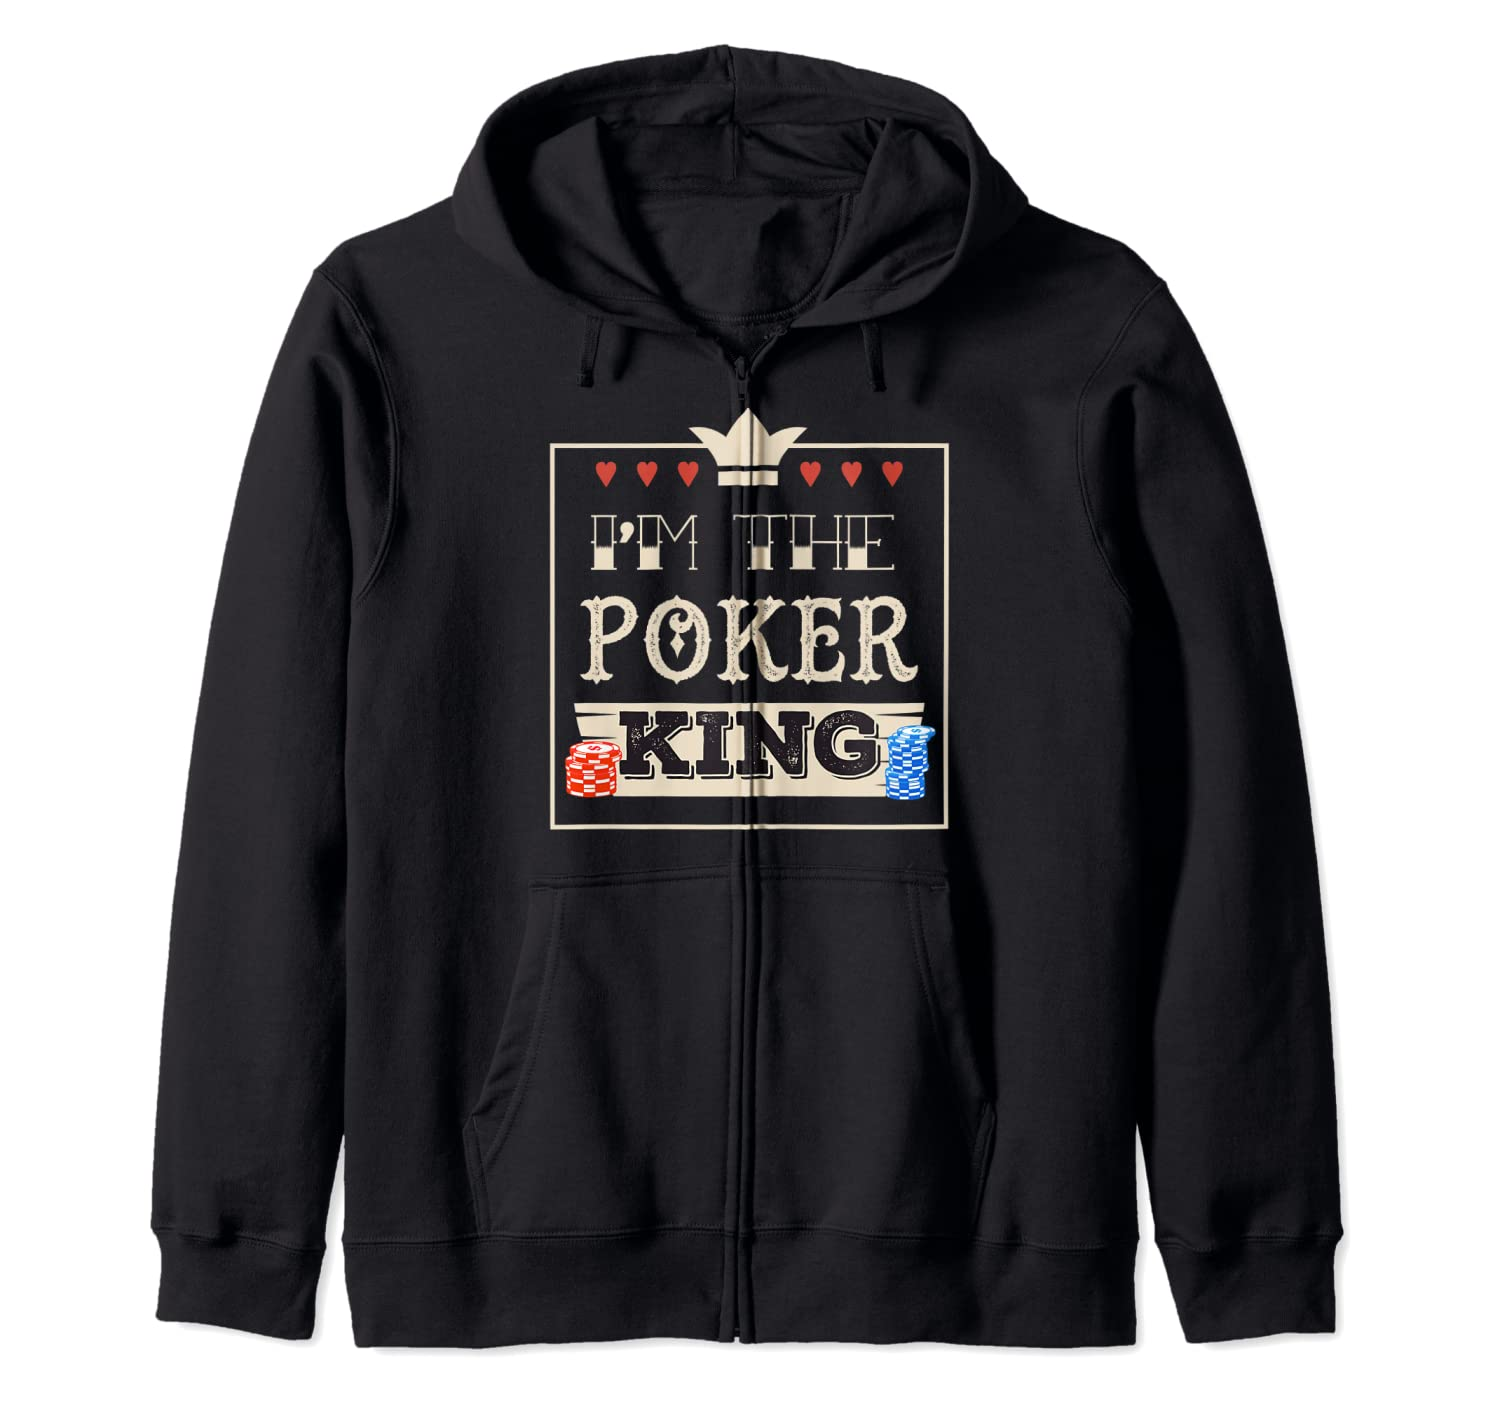 Cool Poker Apparel Im The Poker King Zip Hoodie Buy Products Online With Ubuy Bahrain In Affordable Prices B07wr69jhp